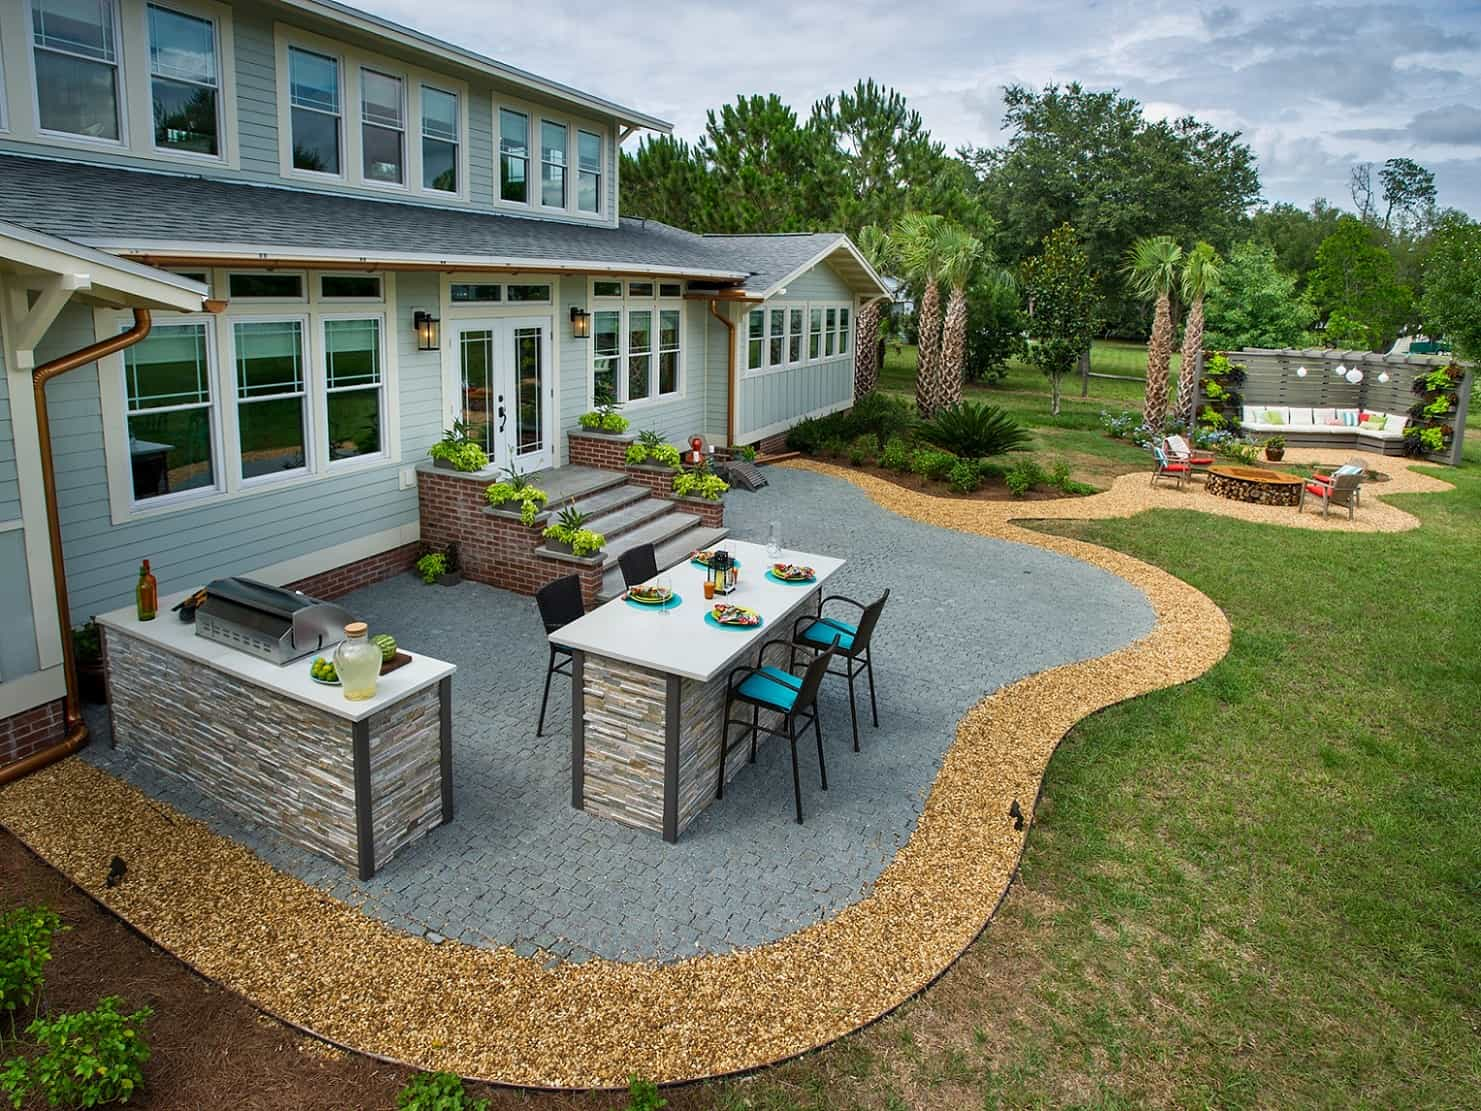 Fabulous Patios Designs That Will Leave You Speechless ... on House Backyard Deck id=22897